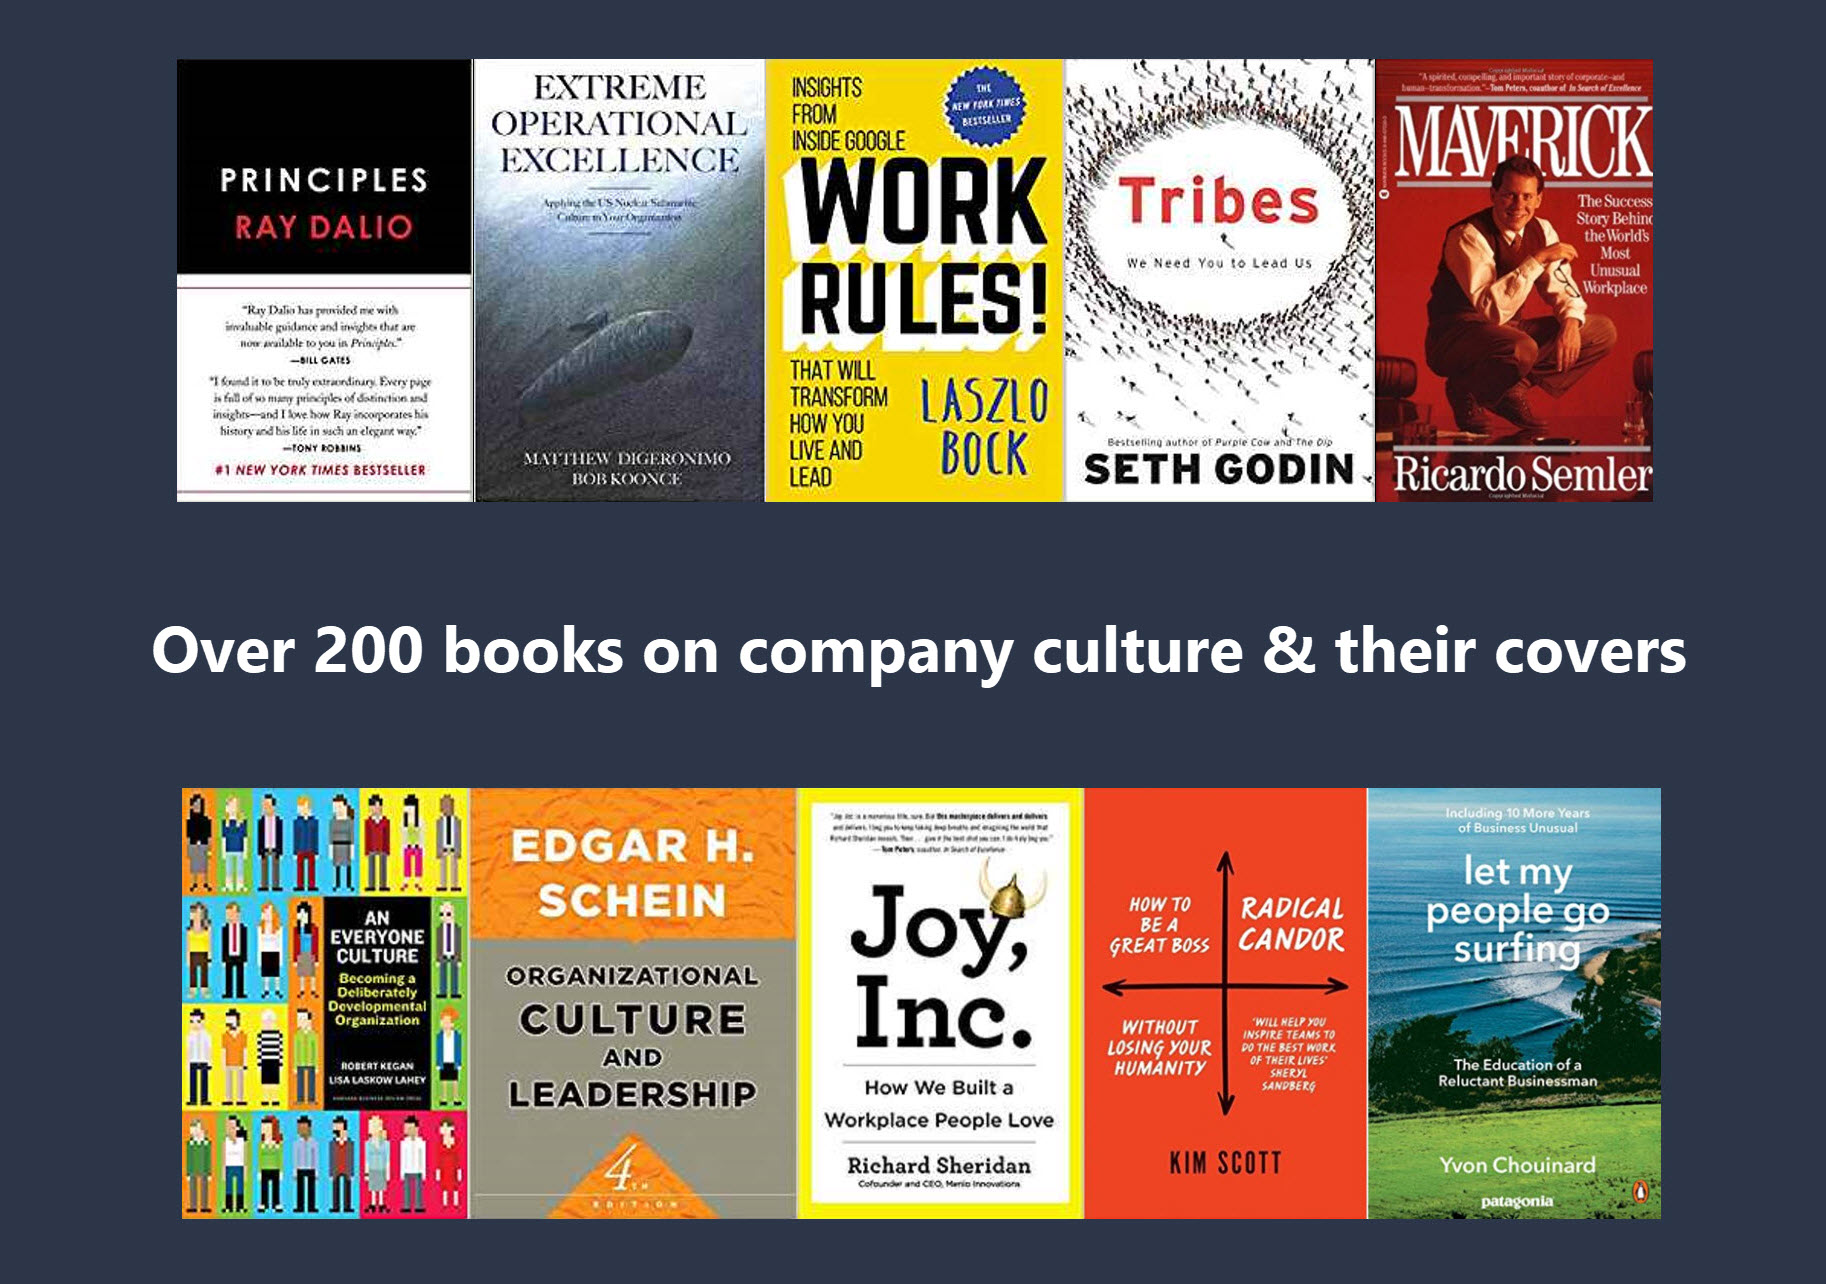 A collection of more than 200 books on company culture and their covers cool content malvernweather Gallery